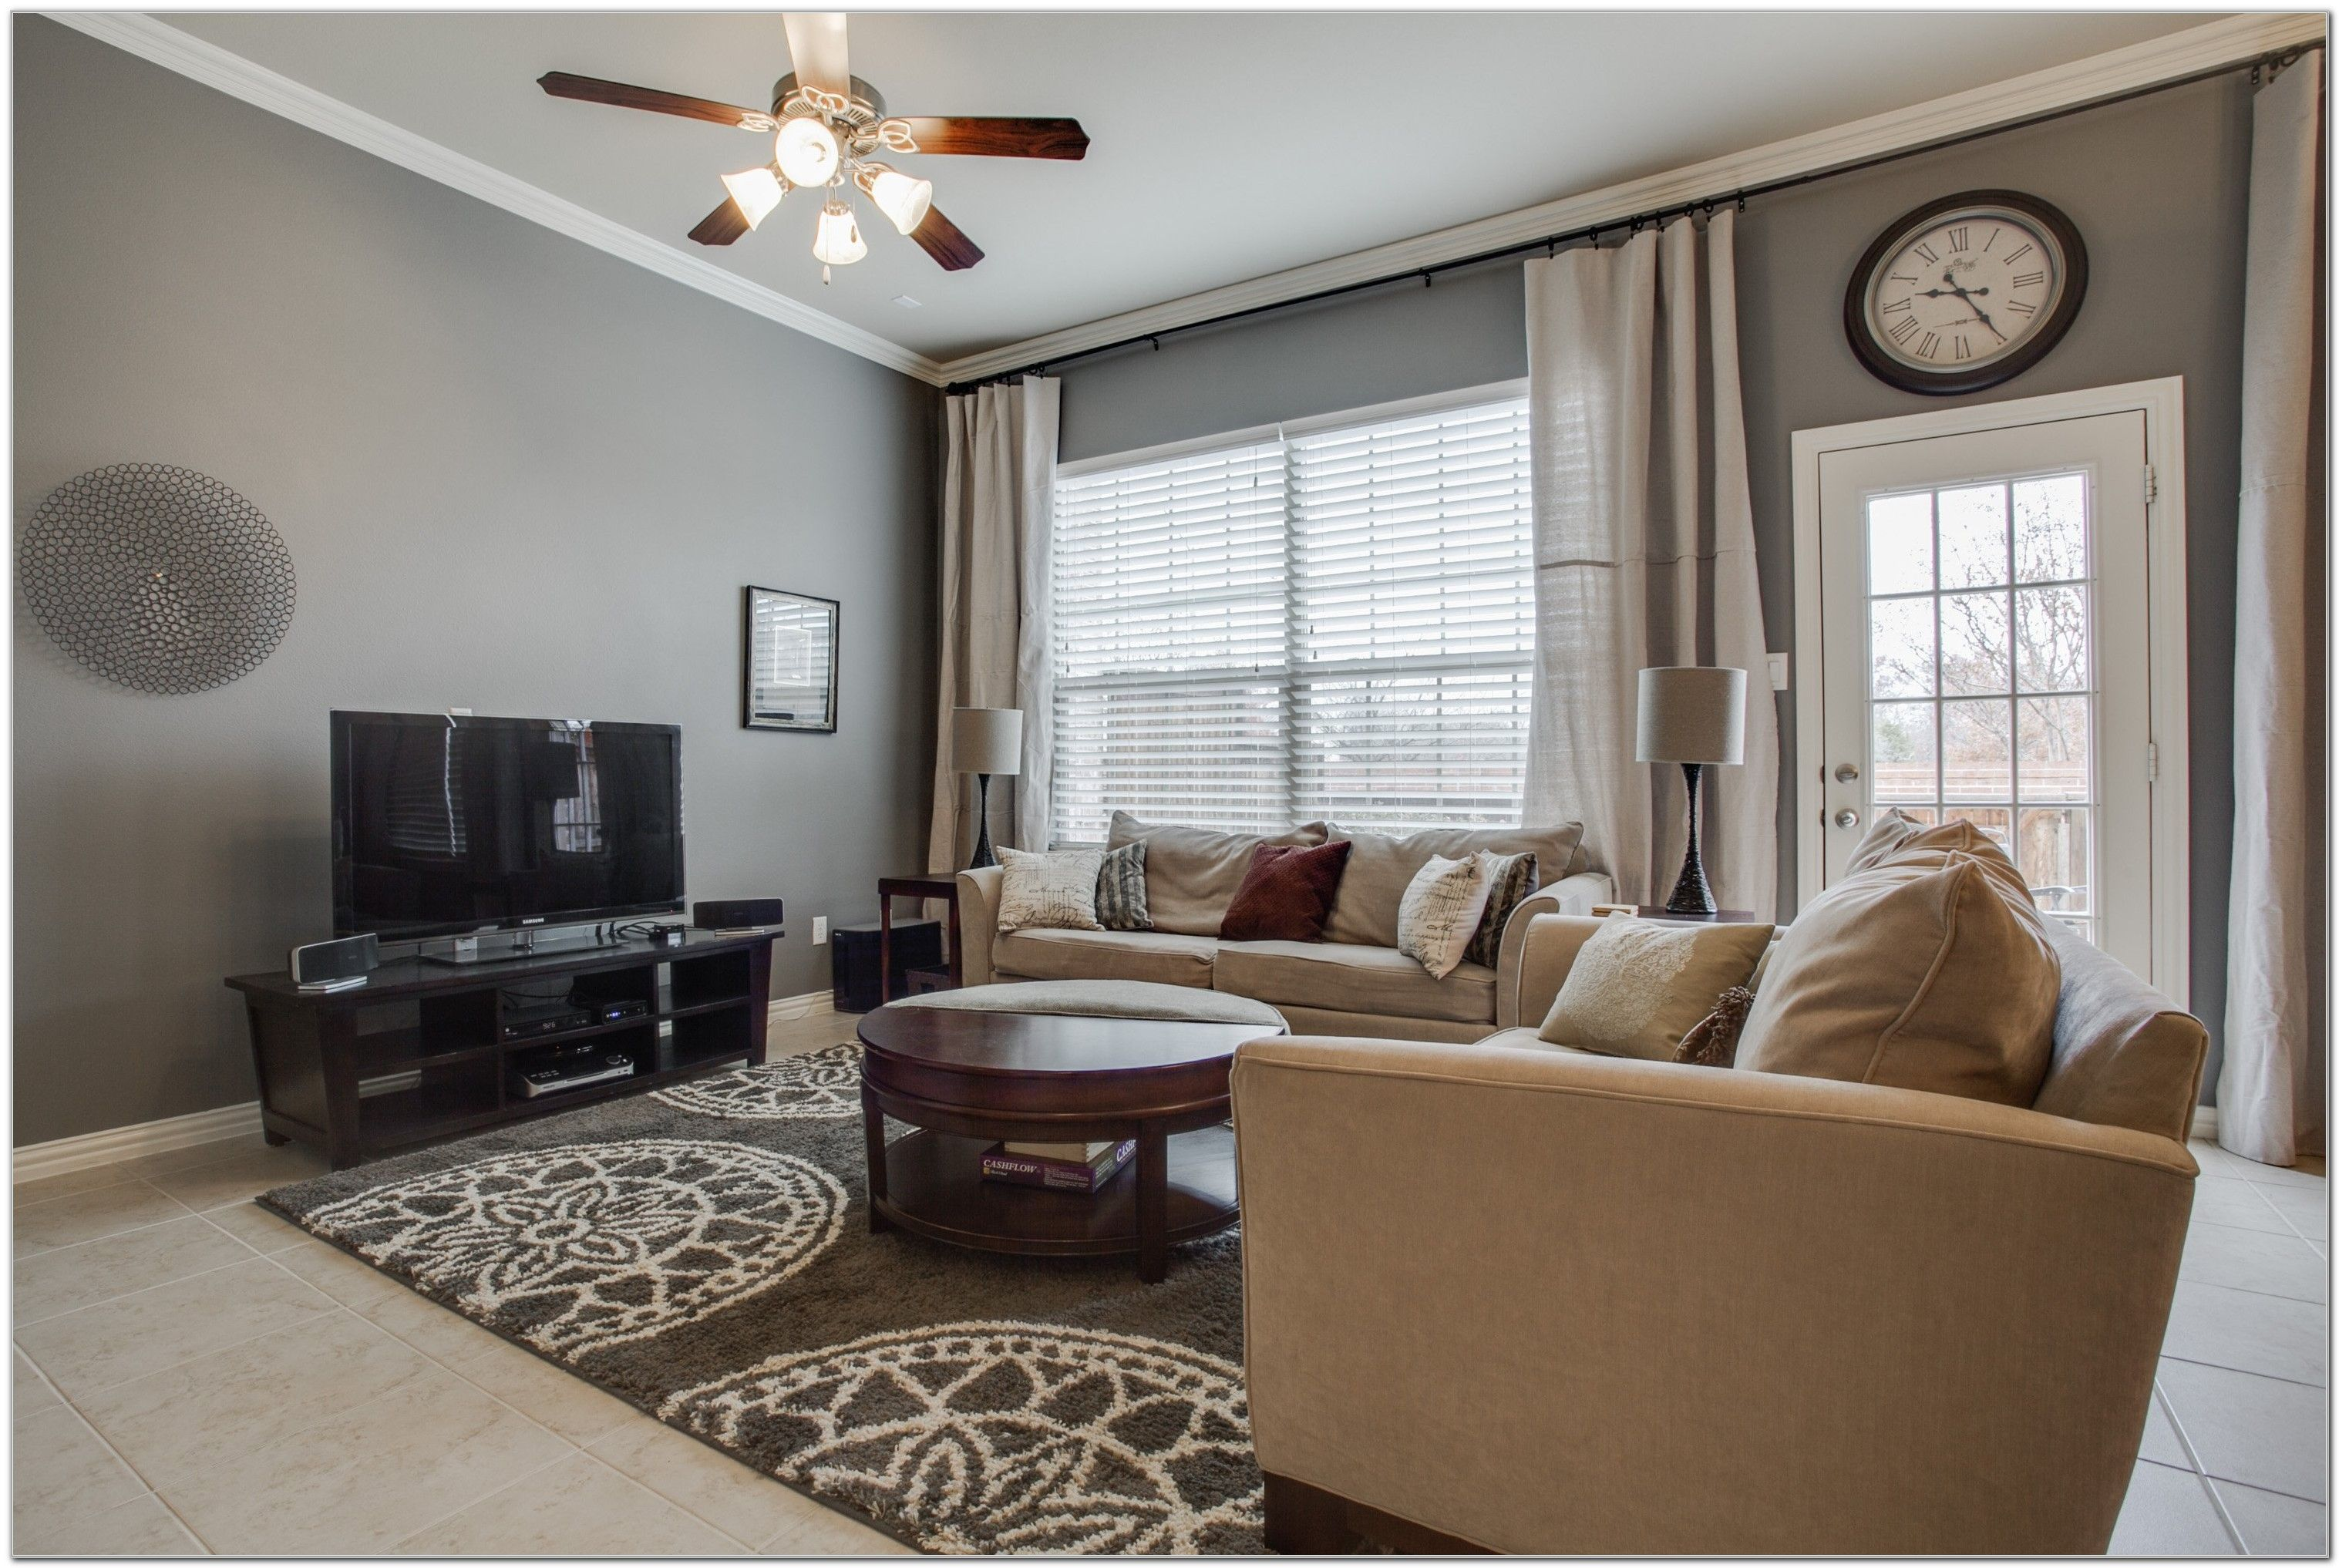 Hanging Curtains From Ceiling To Floor Hang Curtains Higher Than Window Curtain Menzilperde Net Hang Curtains High Curtains Hanging Curtains,Christina Tarek El Moussa Net Worth